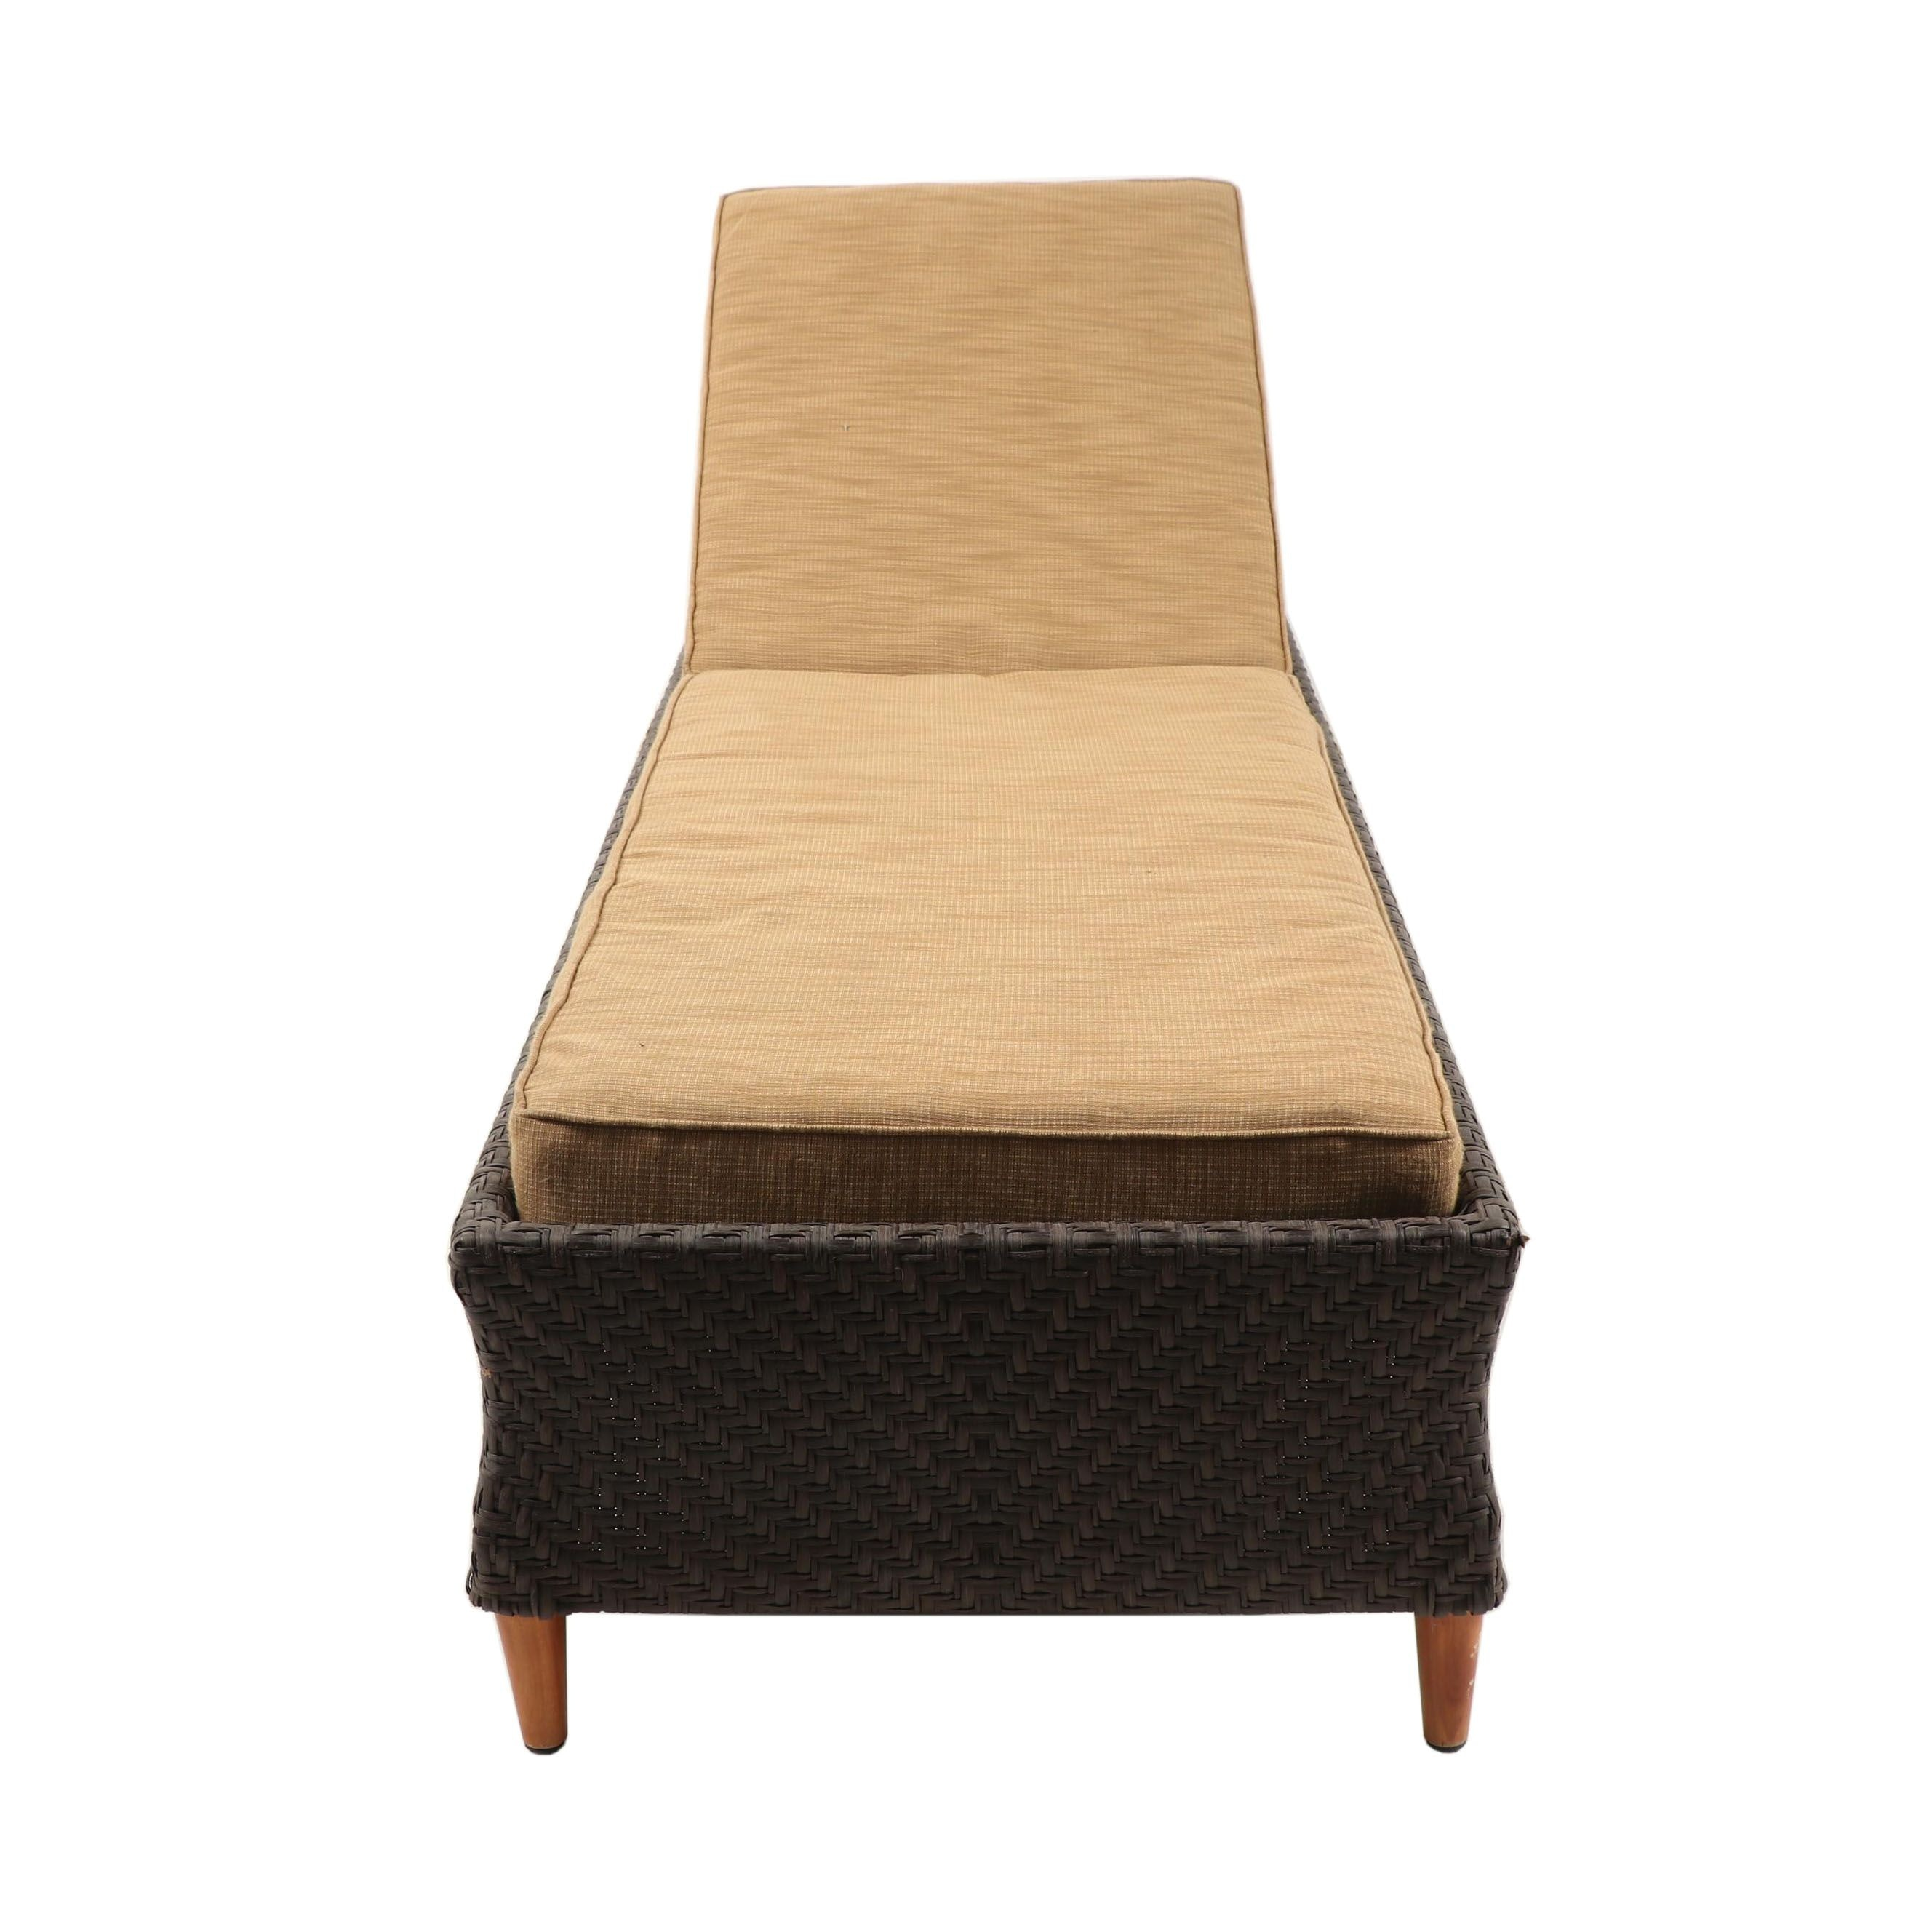 Brown Jordan Outdoor Convertible Bench/Chaise Lounge